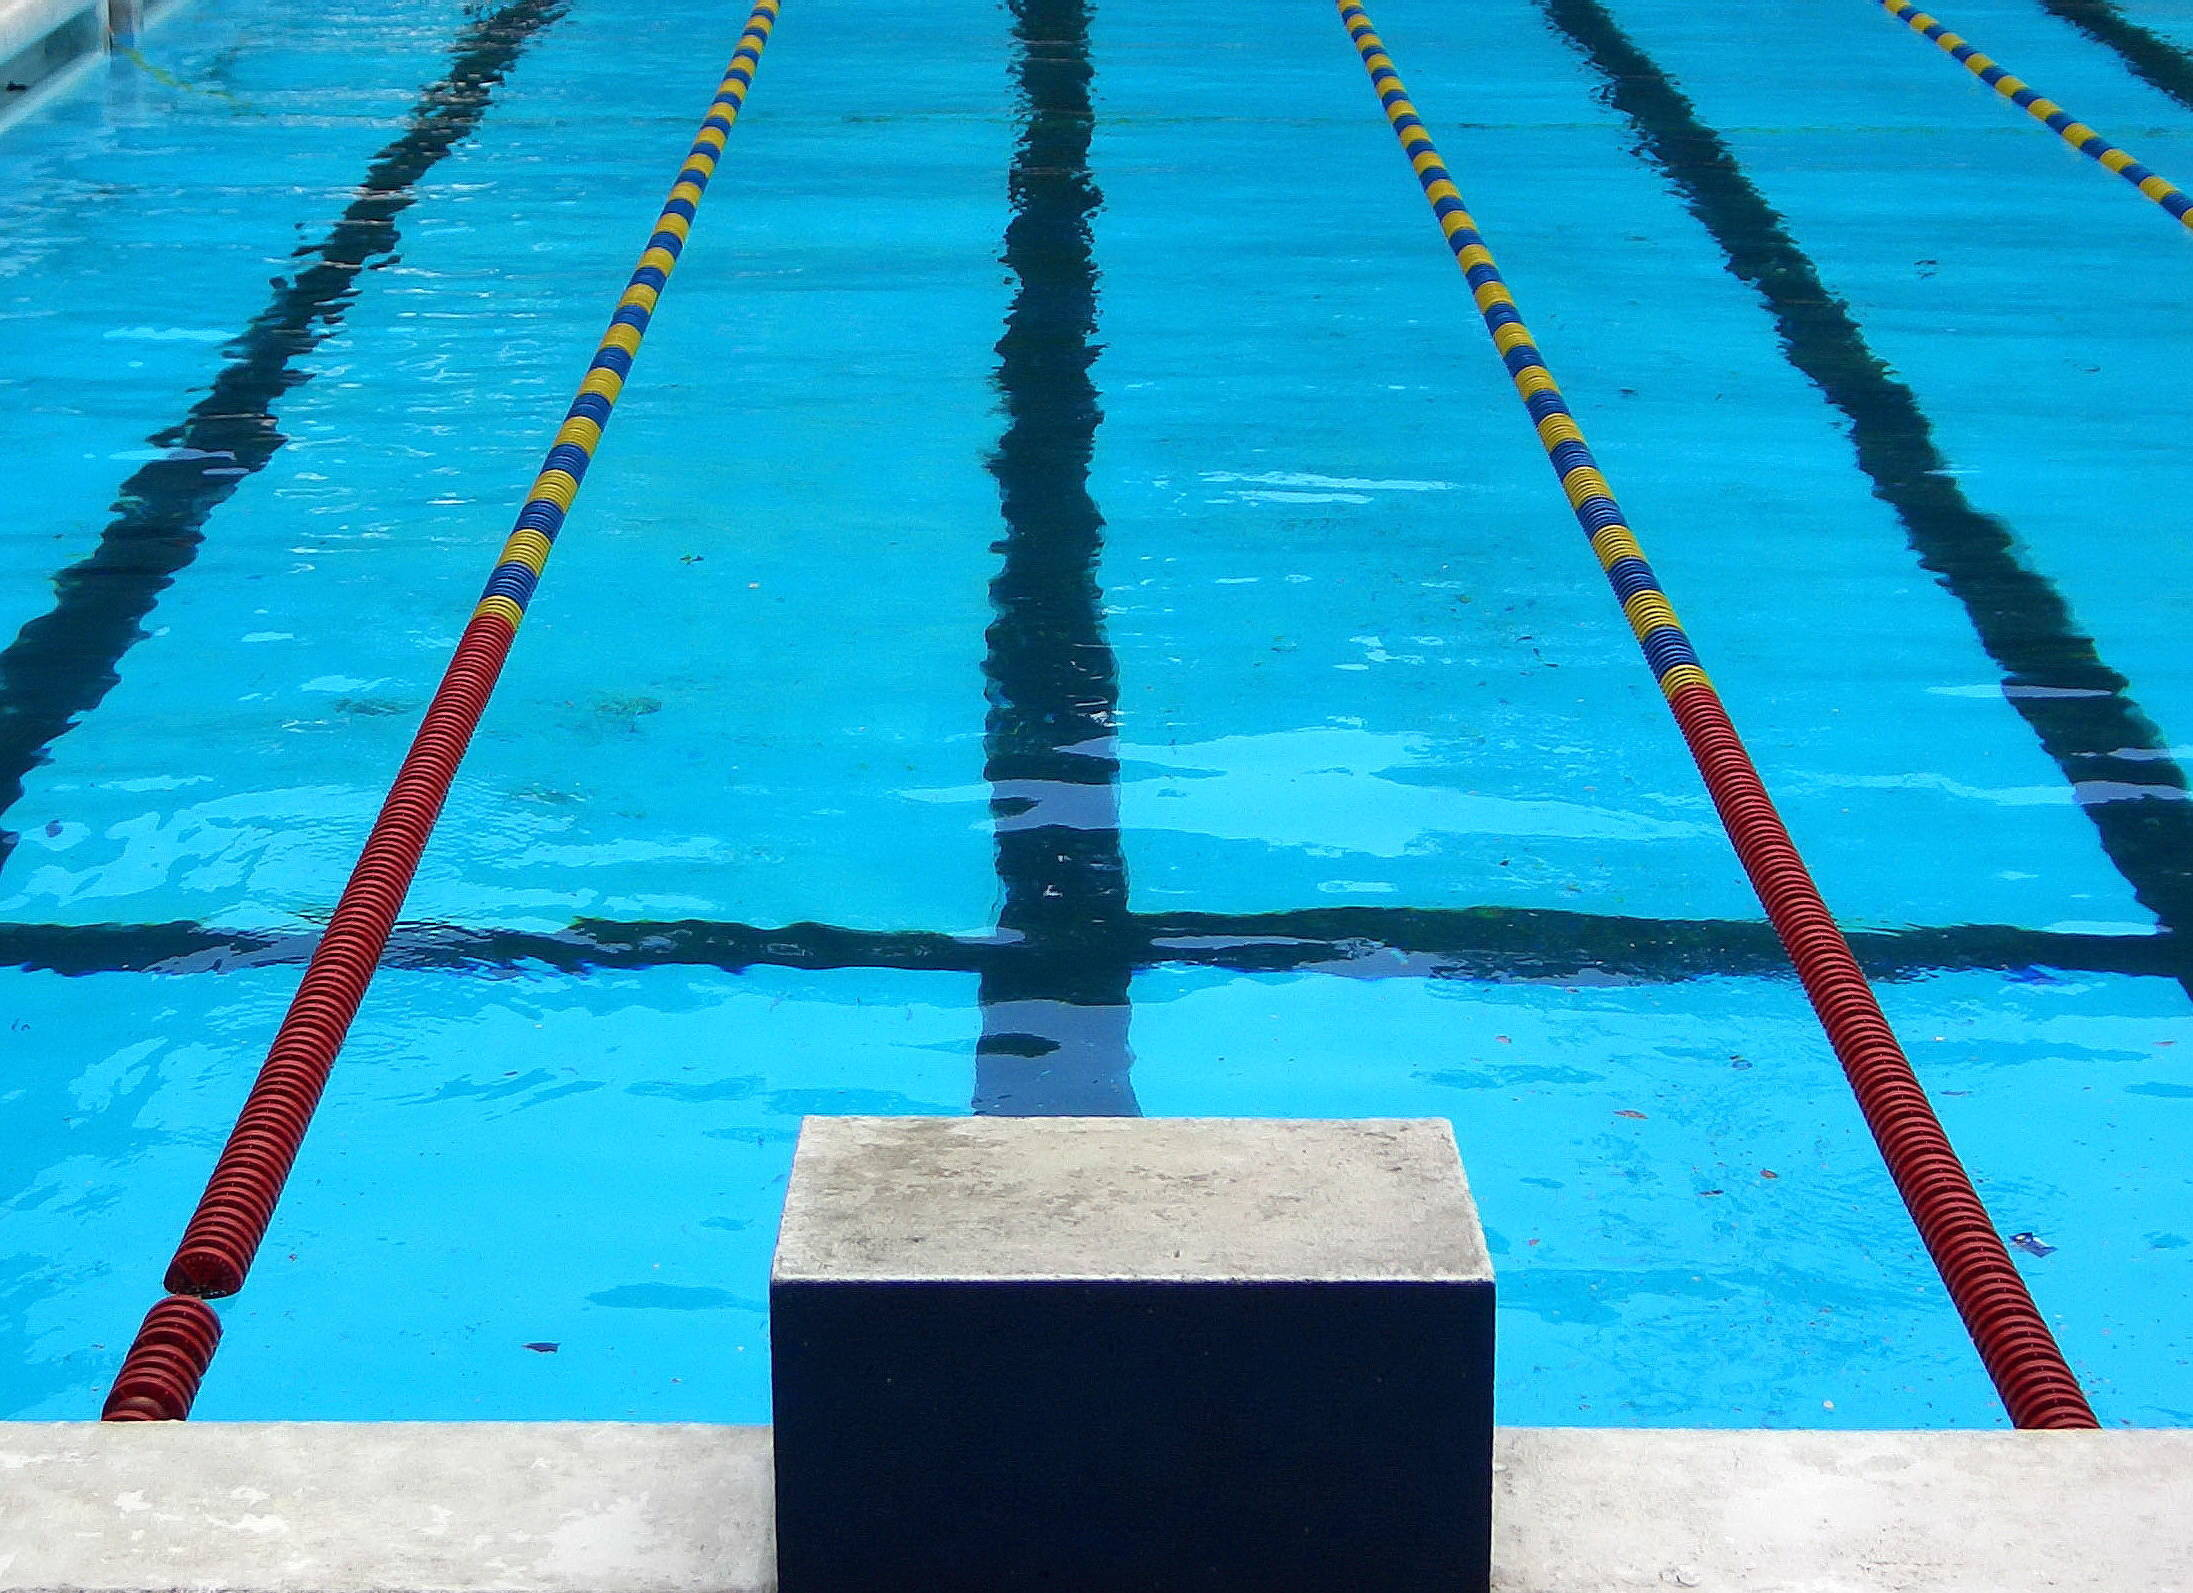 27f5e0f3251563b8eb37_Competition_swimming_pool_block.jpg